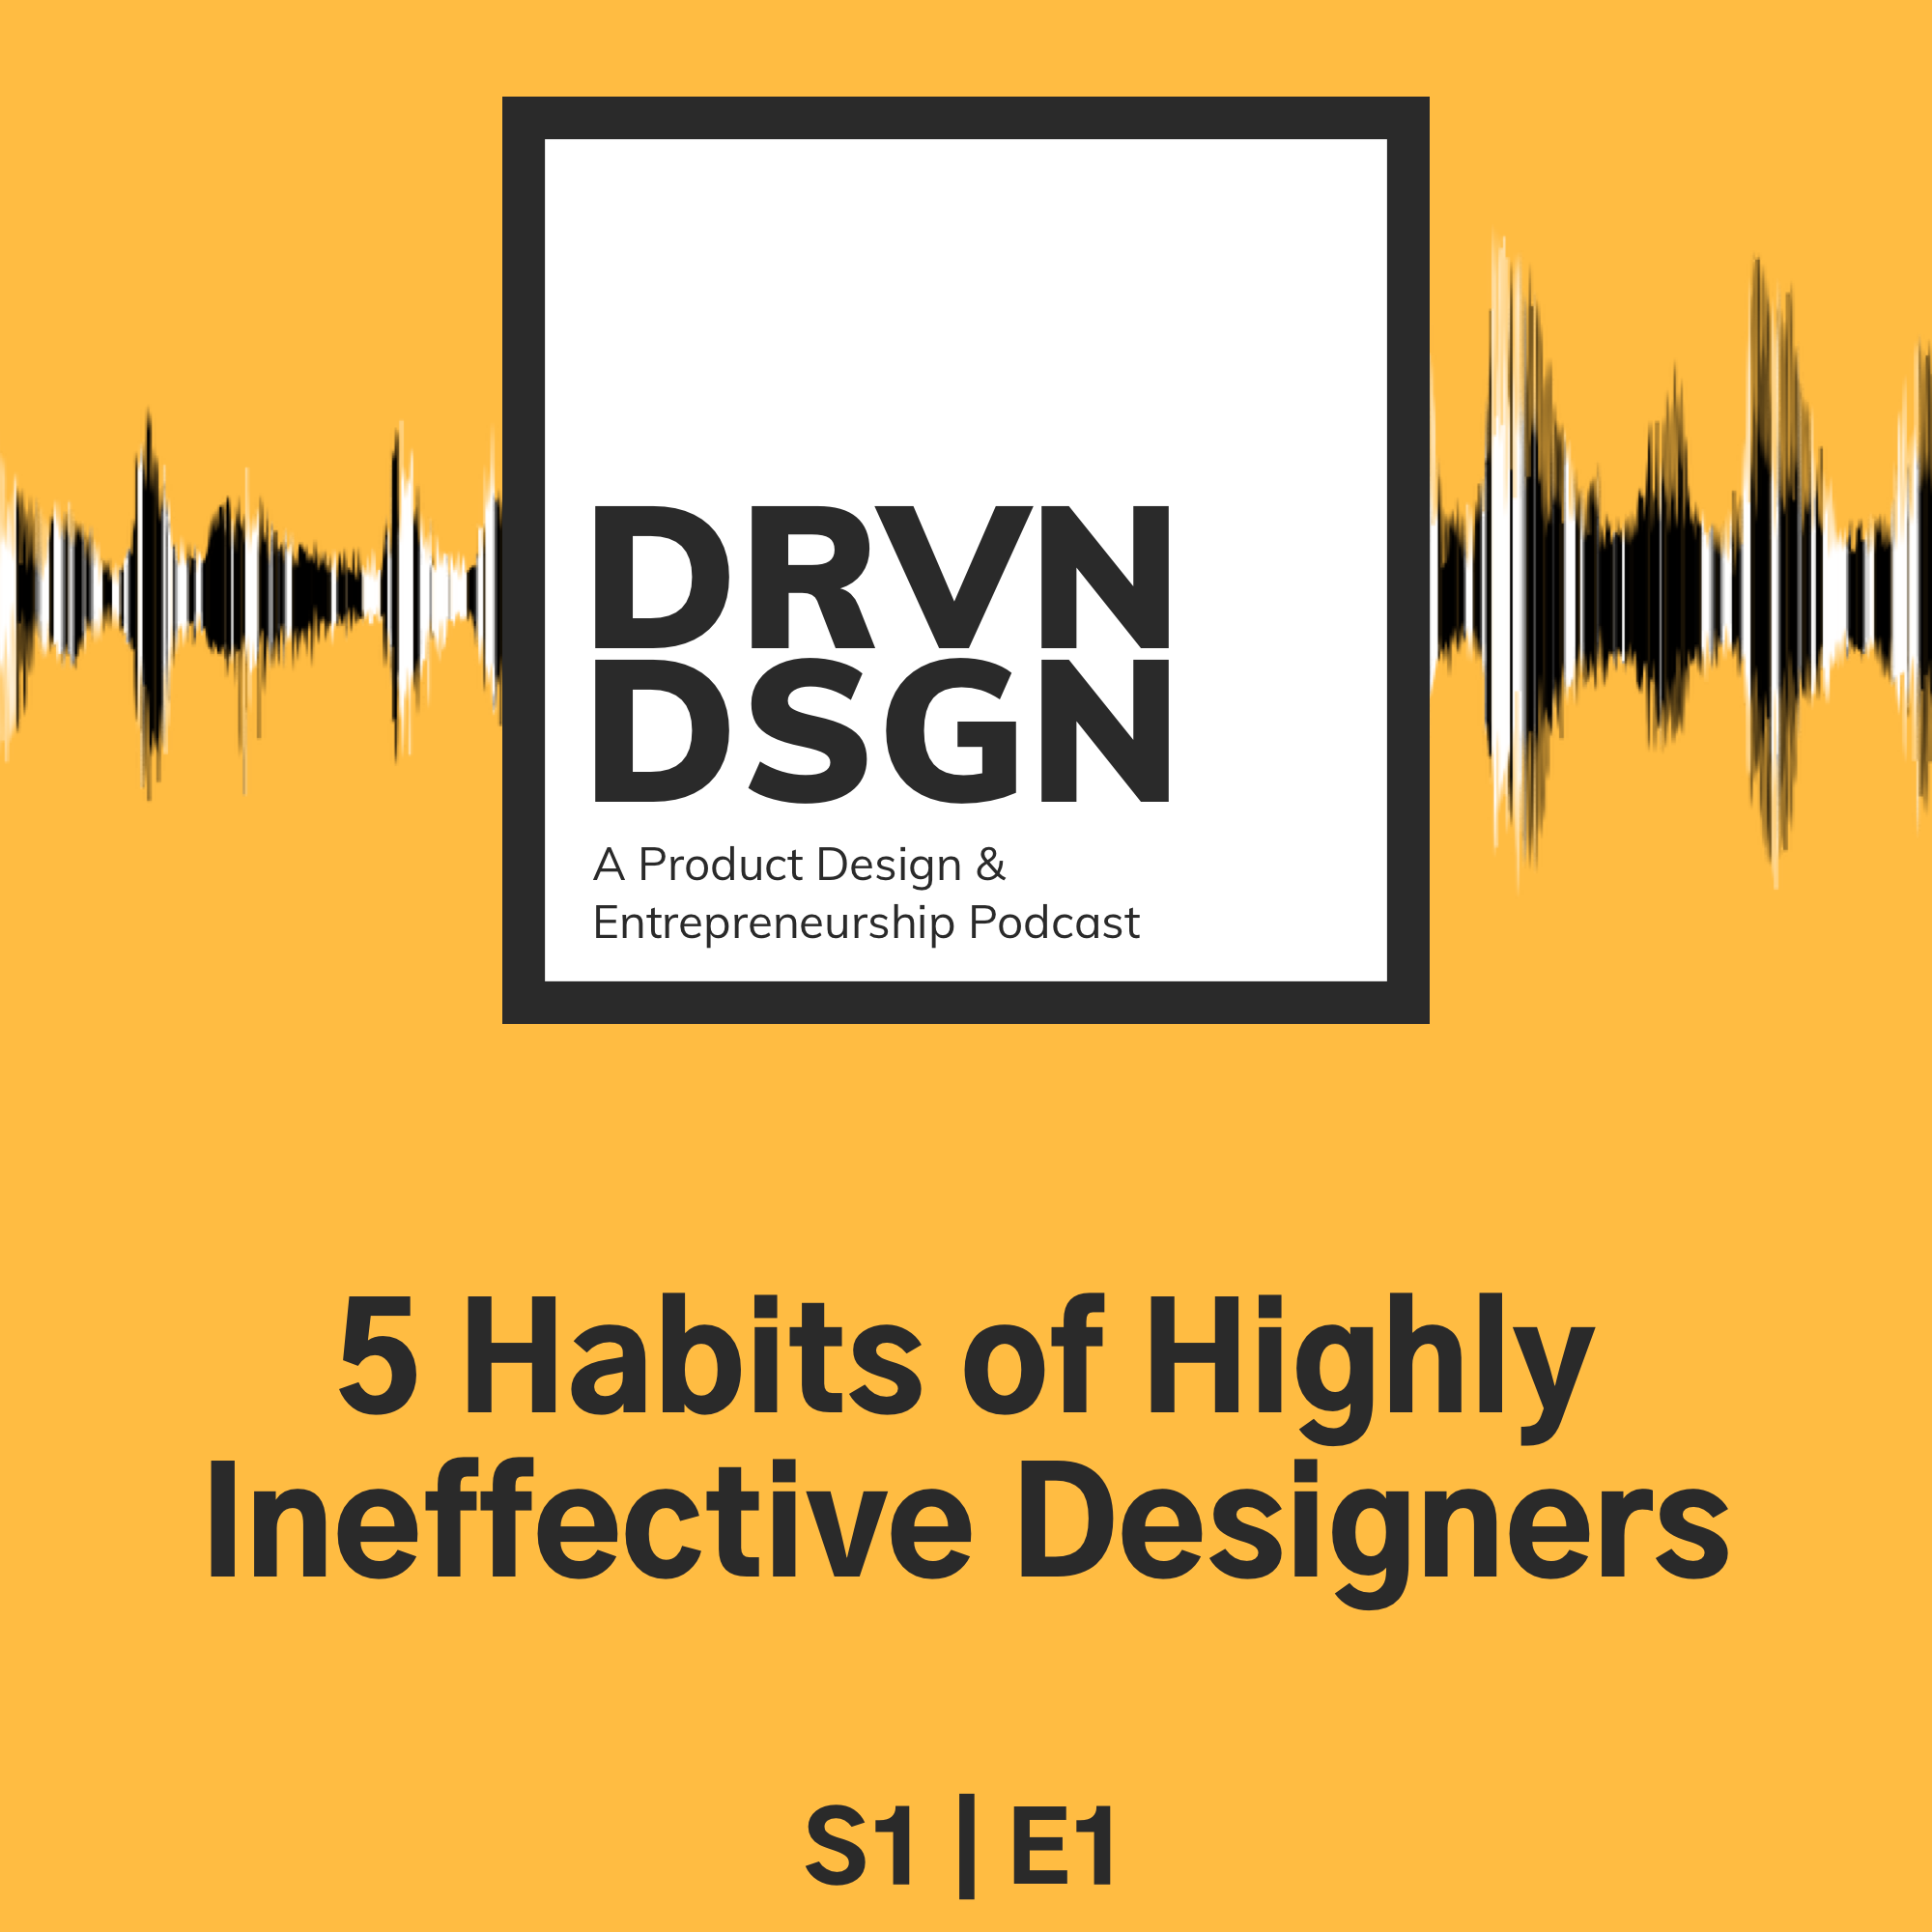 5 Habits of Highly Ineffective Designers